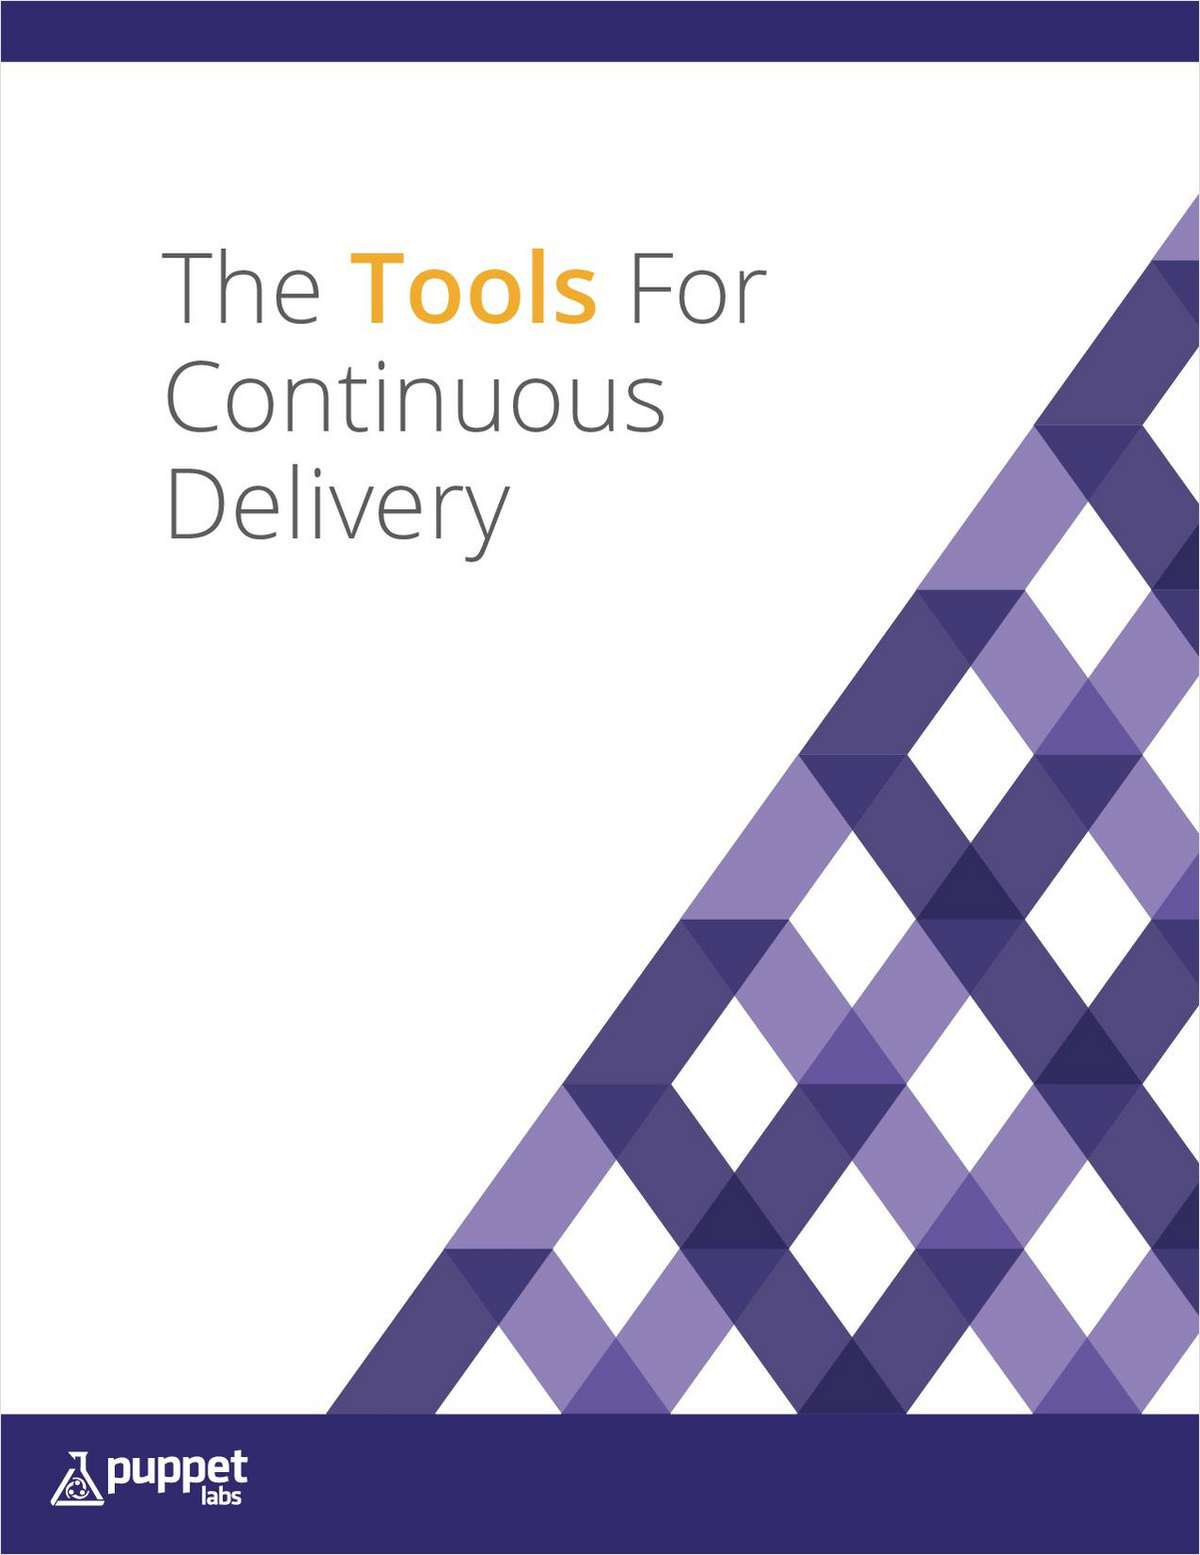 Tools for Continuous Delivery